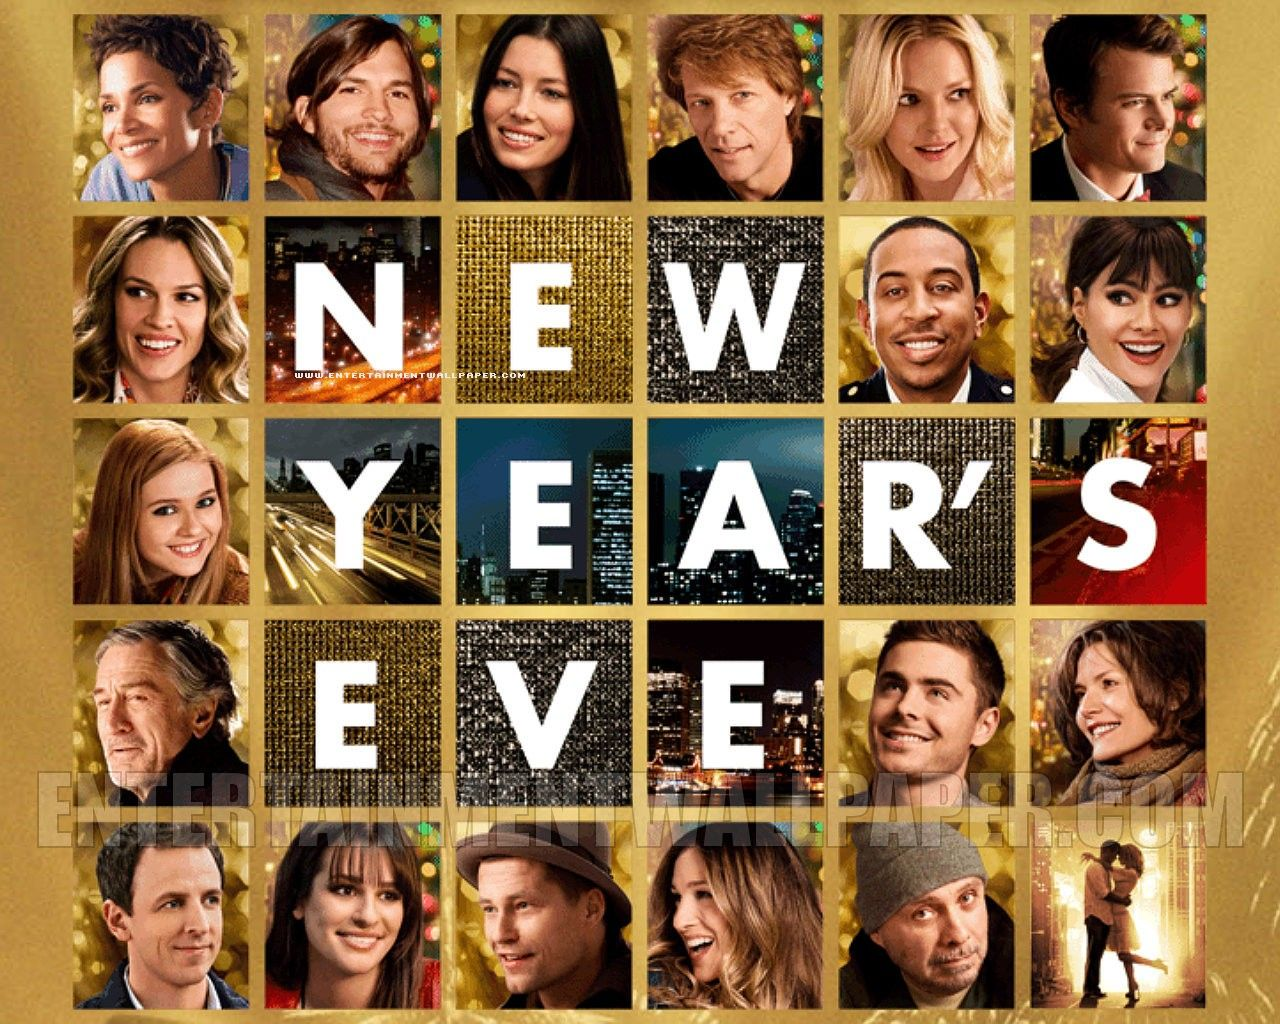 newyearseve Happy new year movie, New year's eve film